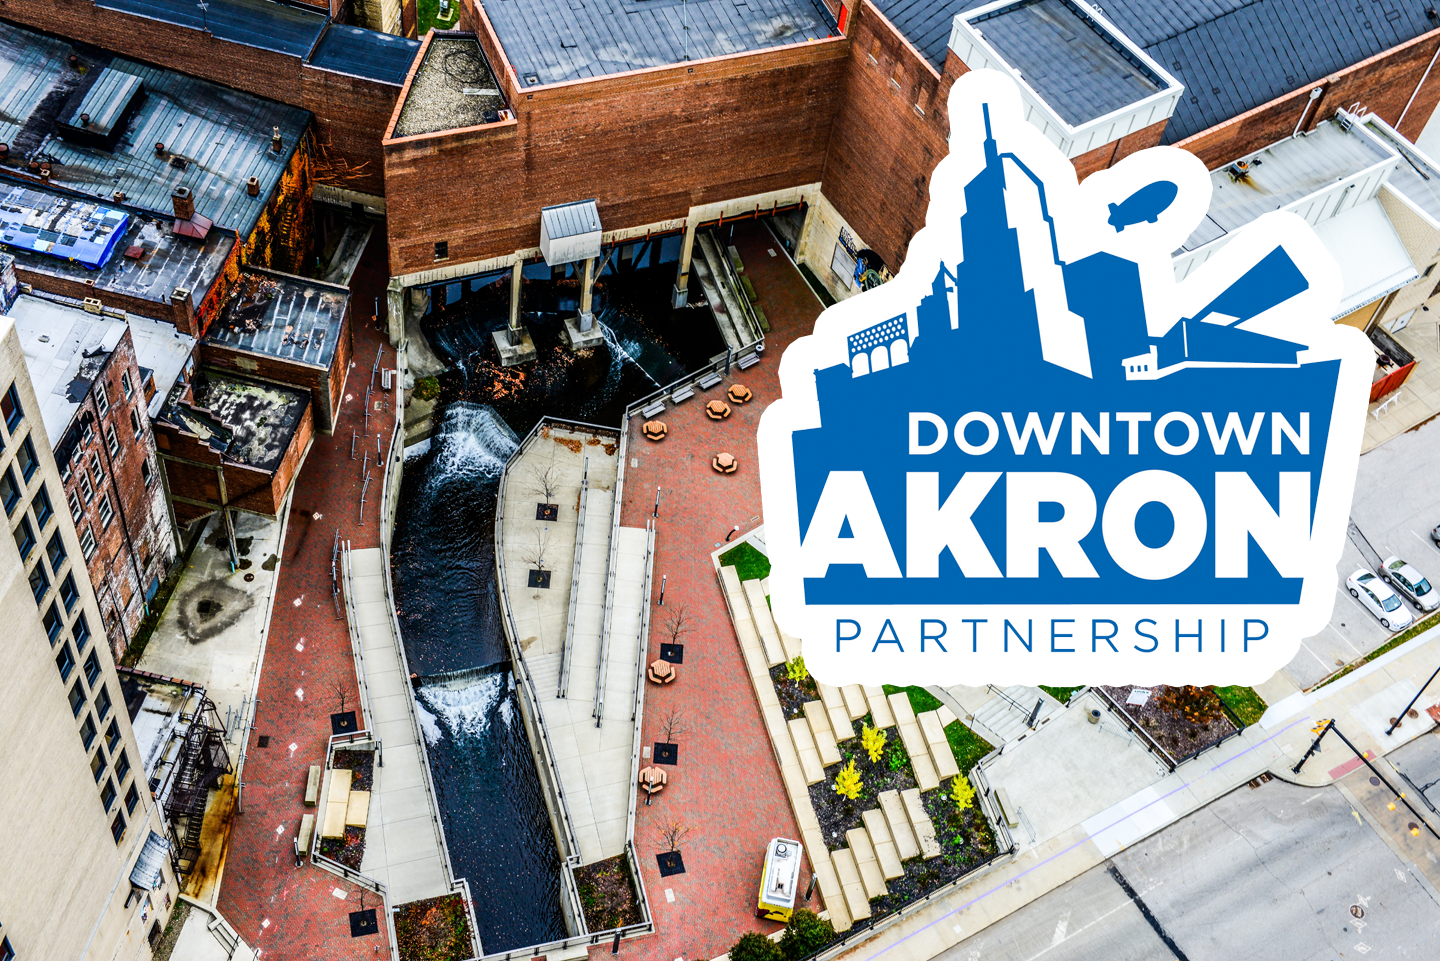 Downtown Akron Partnership